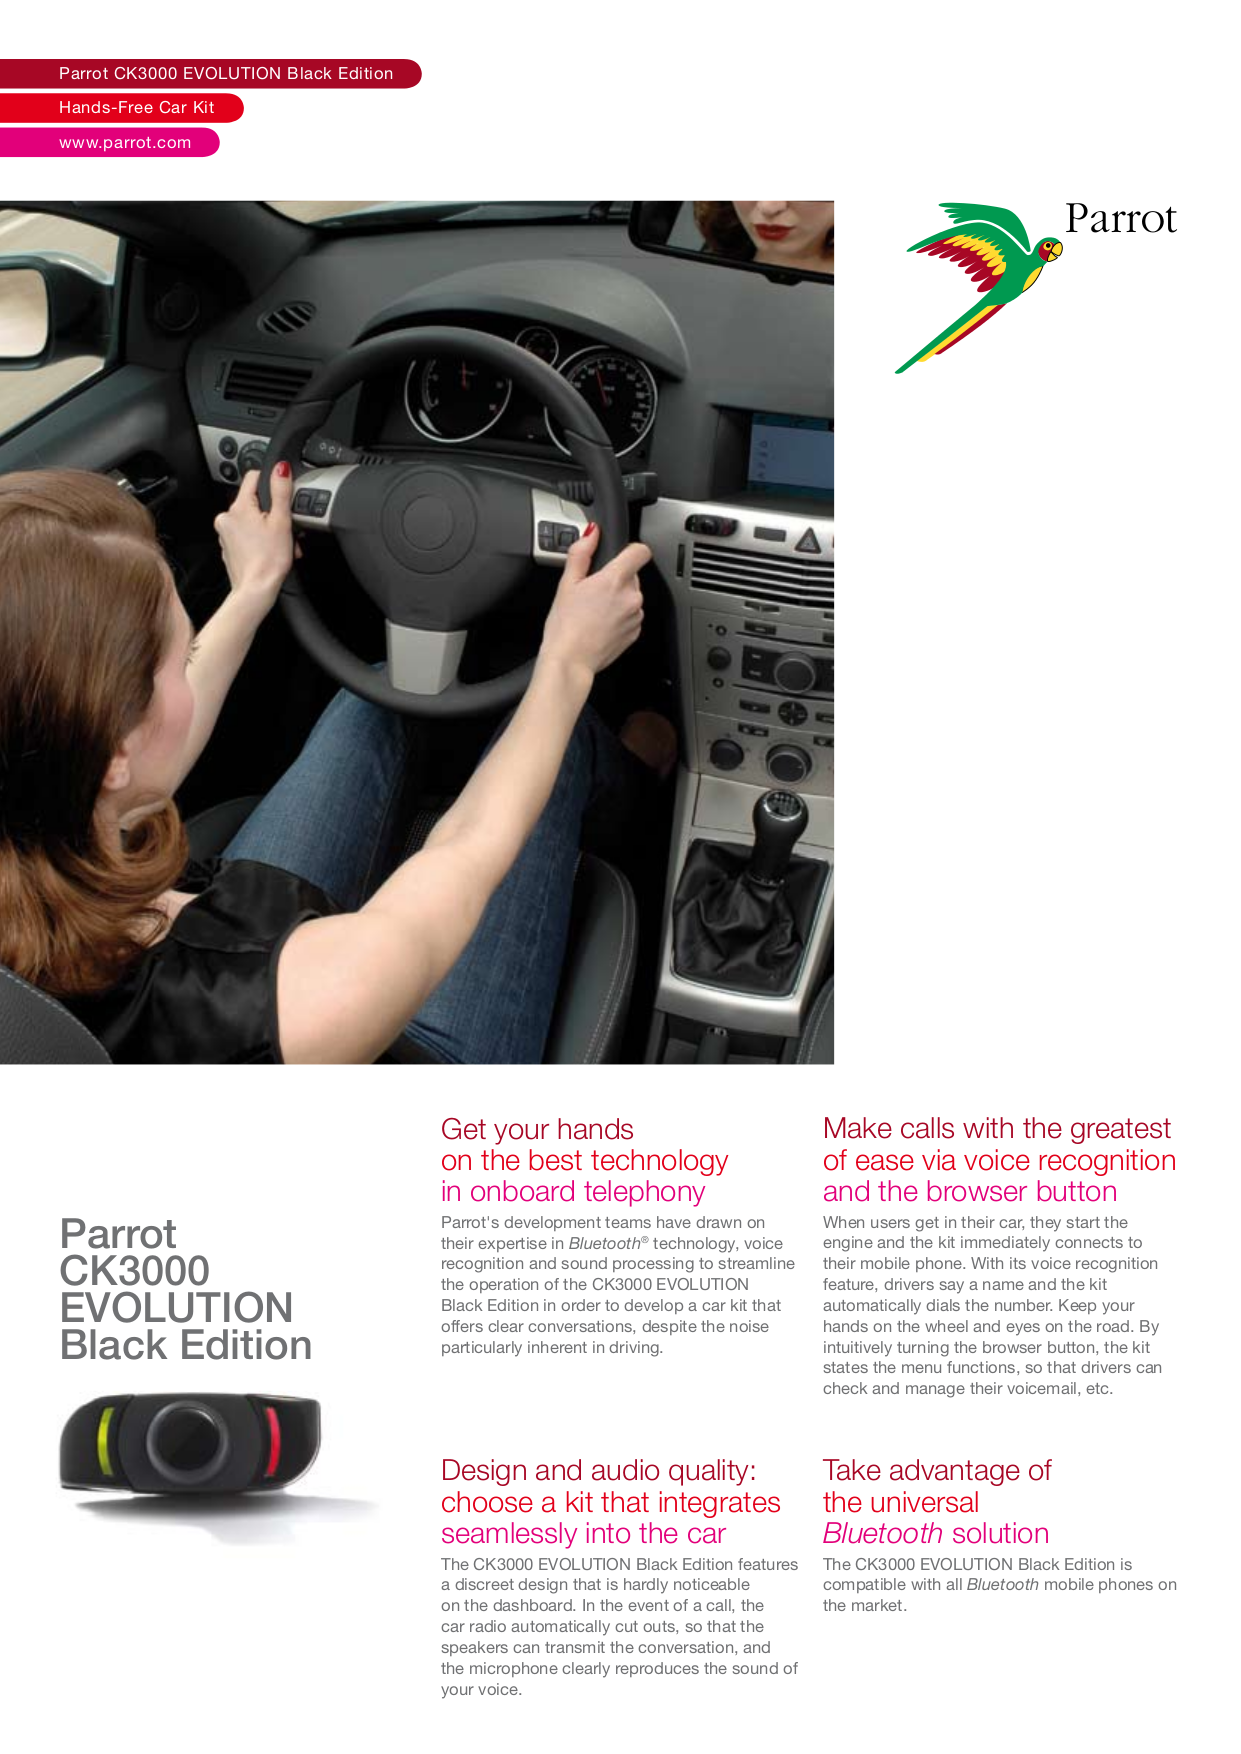 Download Free Pdf For Parrot Ck3000 Hand Free Kit Other Manual